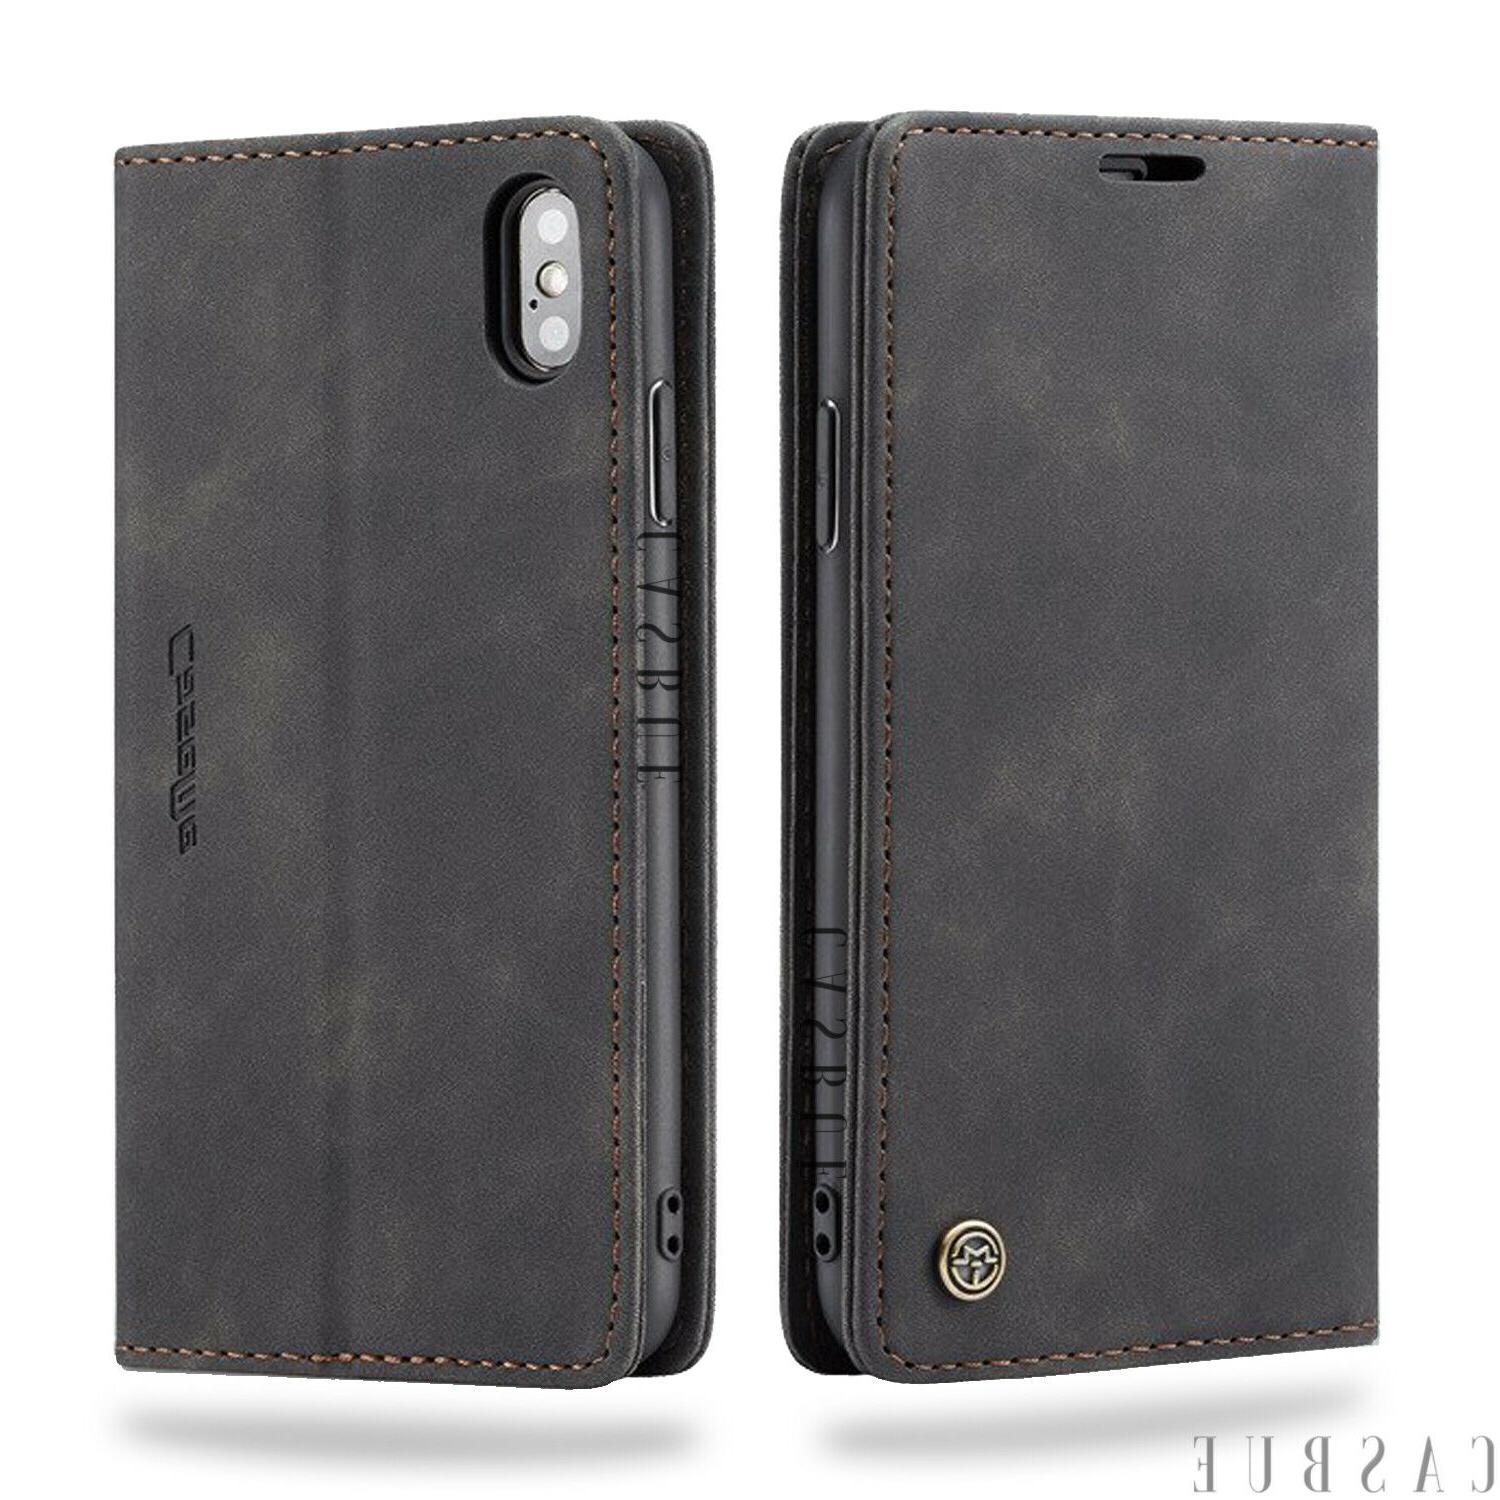 Magnetic Closure Leather Case Silicone Phone For 11 Max